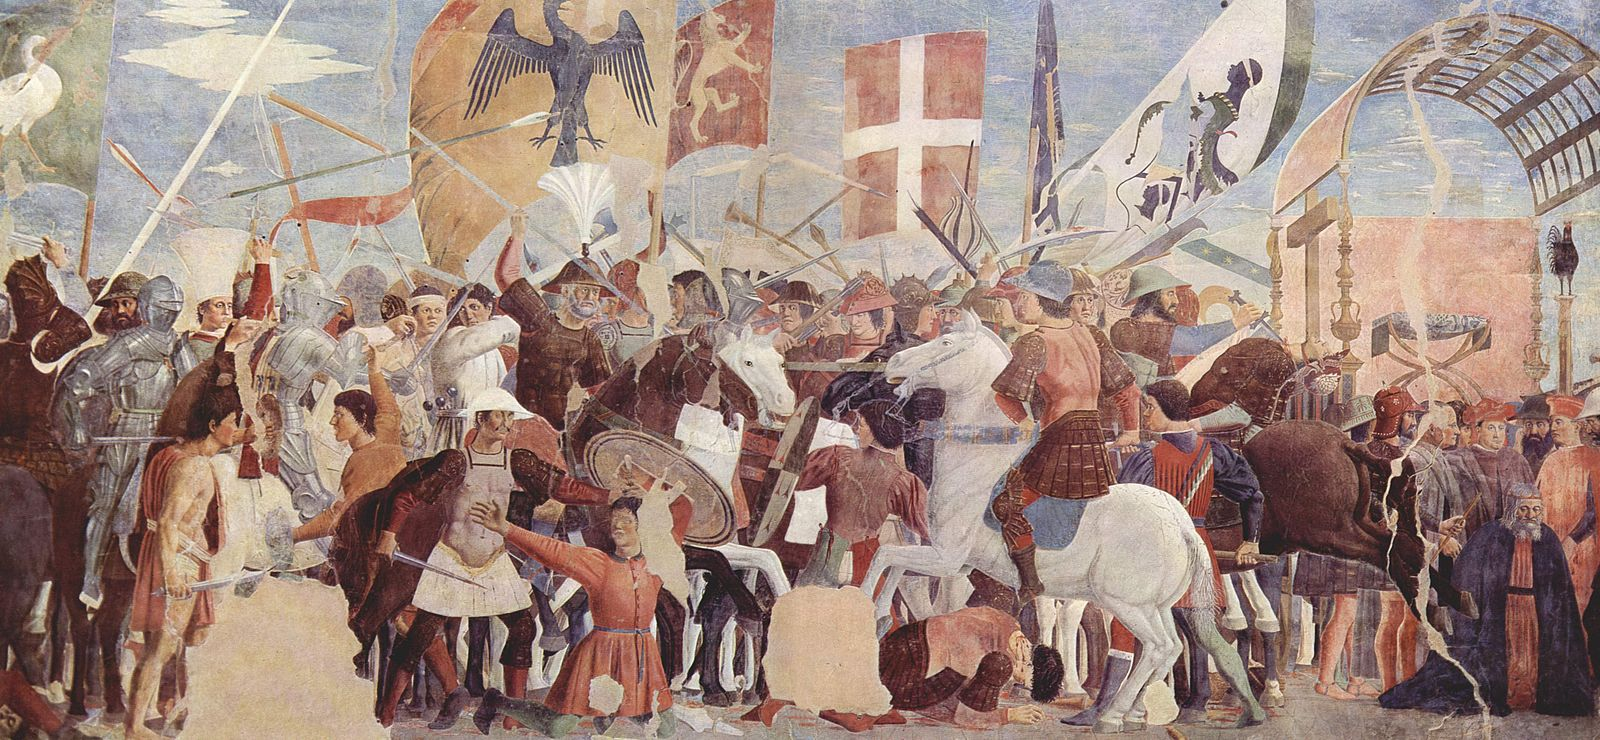 Battle between Heraclius' army and Persians under Khosrow II. Fresco by Piero della Francesca, c. 1452. Piero della Francesca 021.jpg